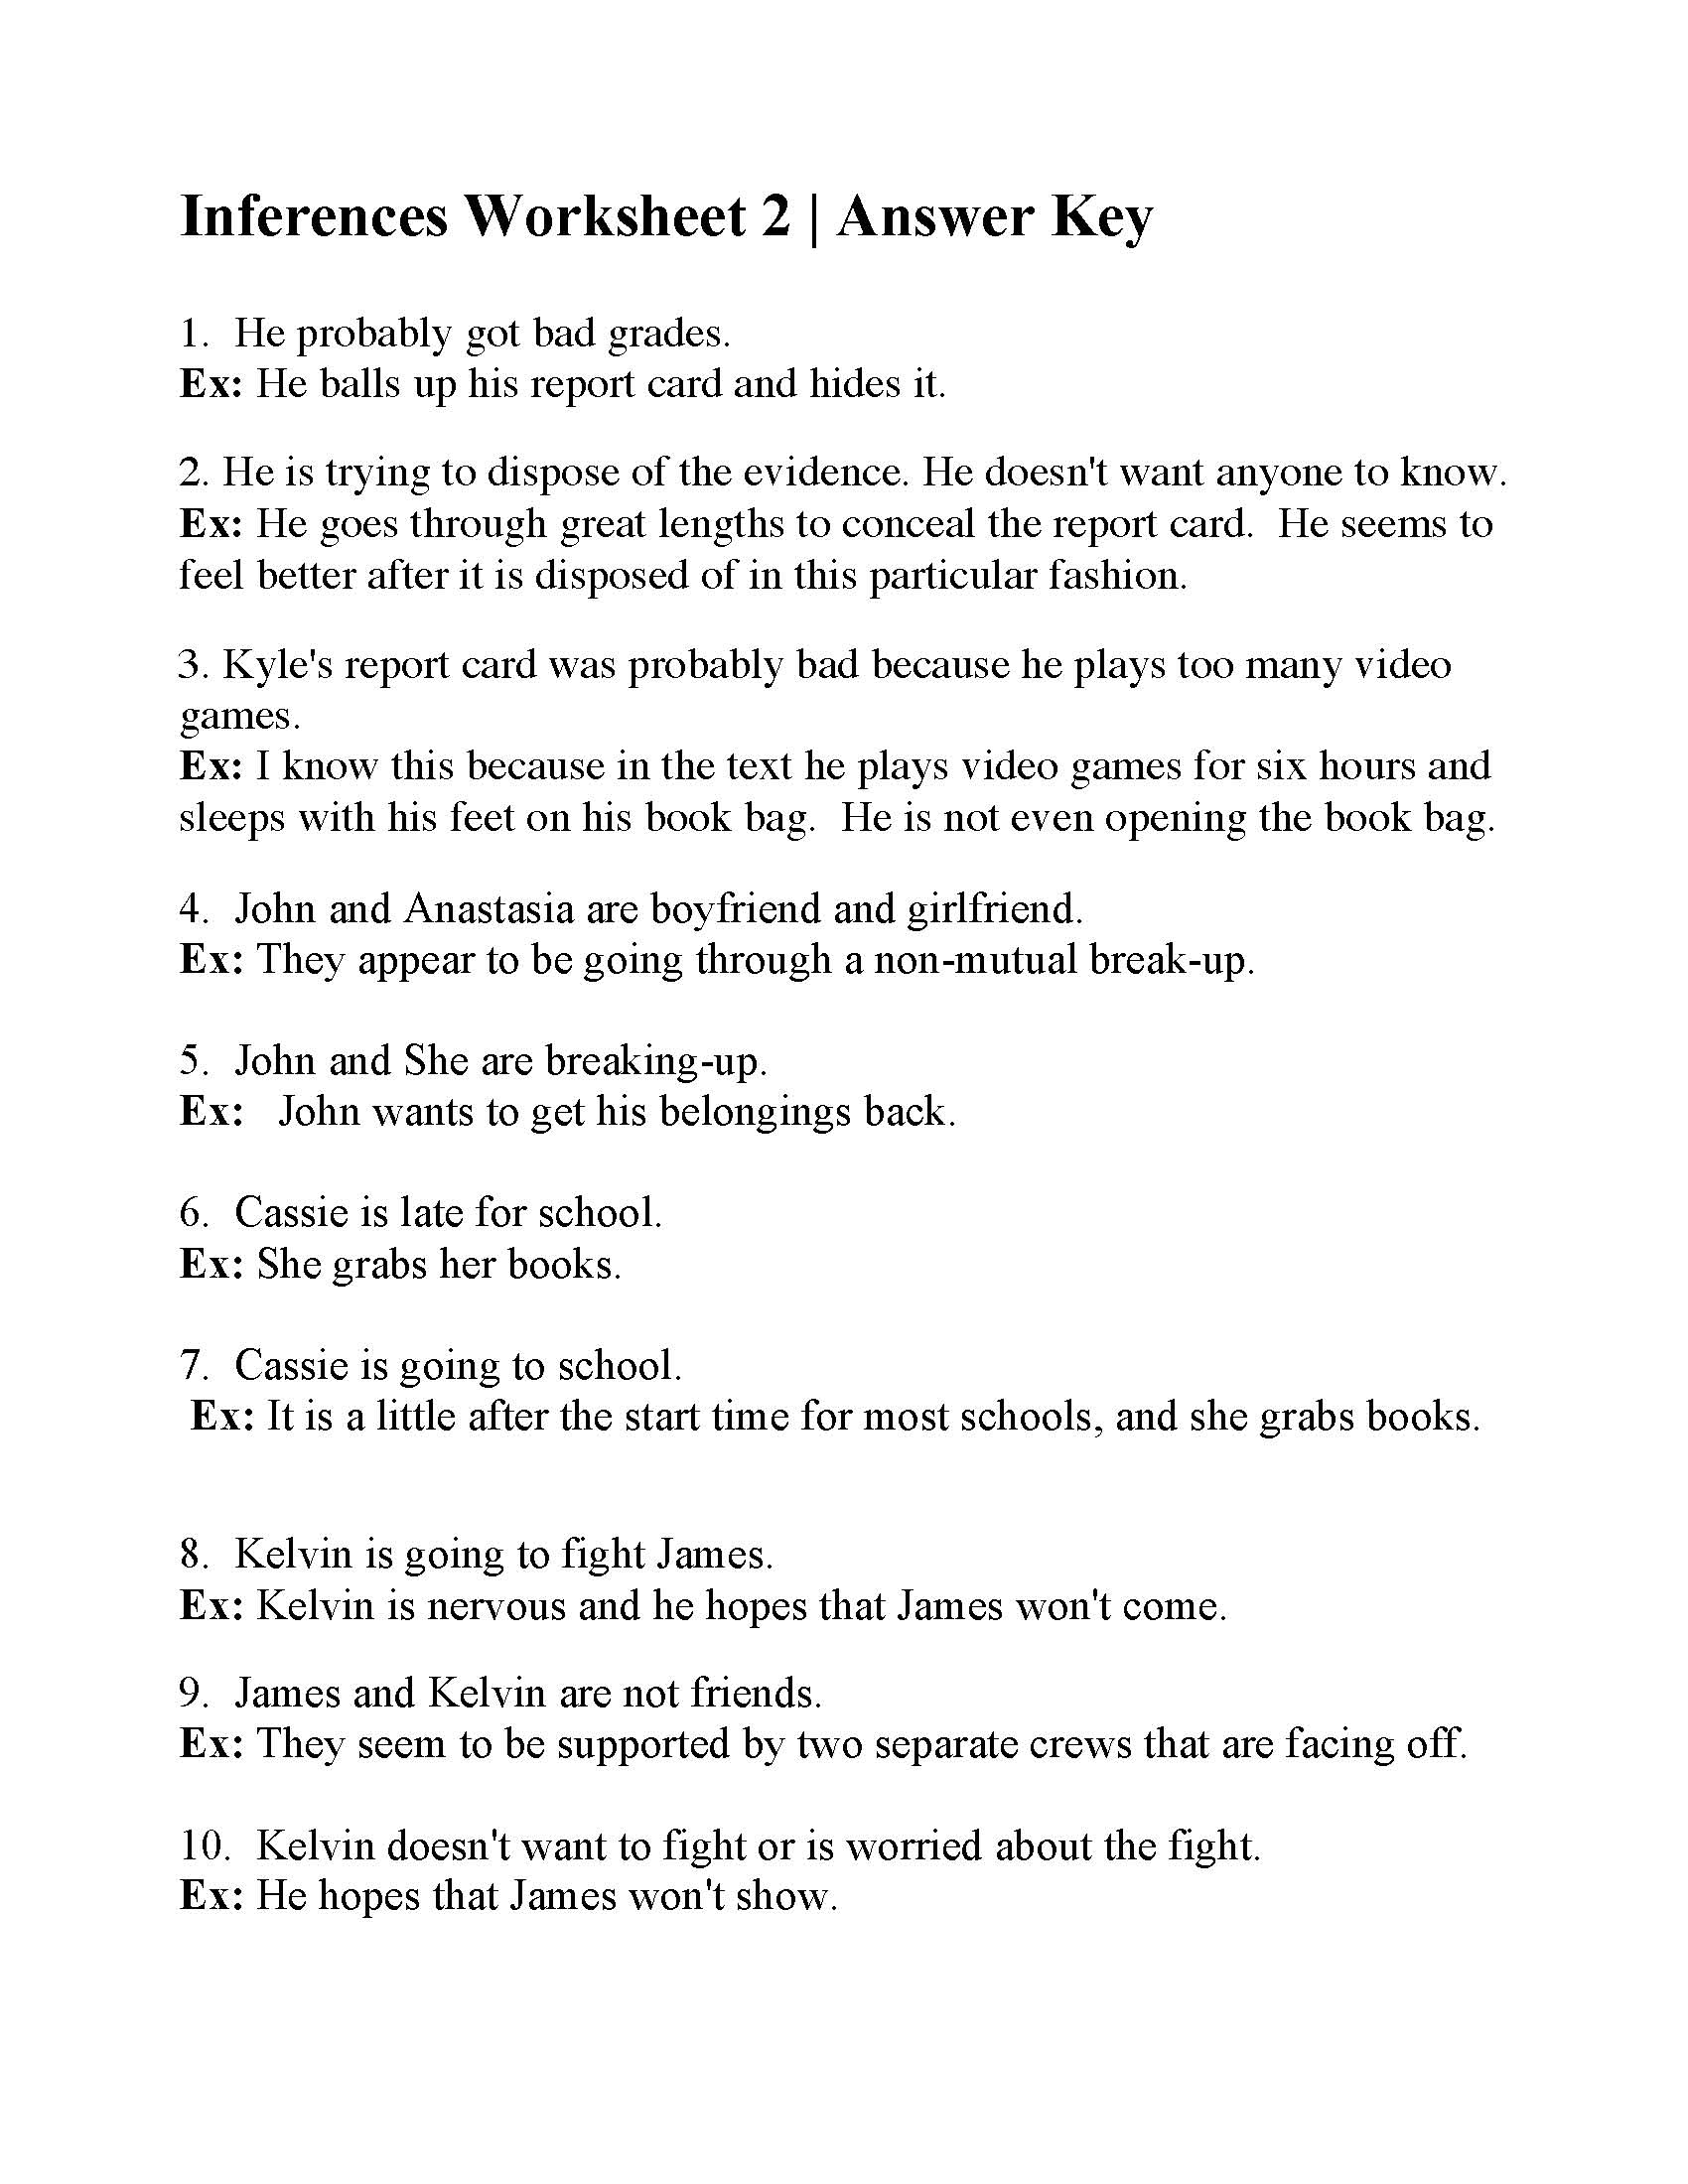 Inferences Worksheet 2